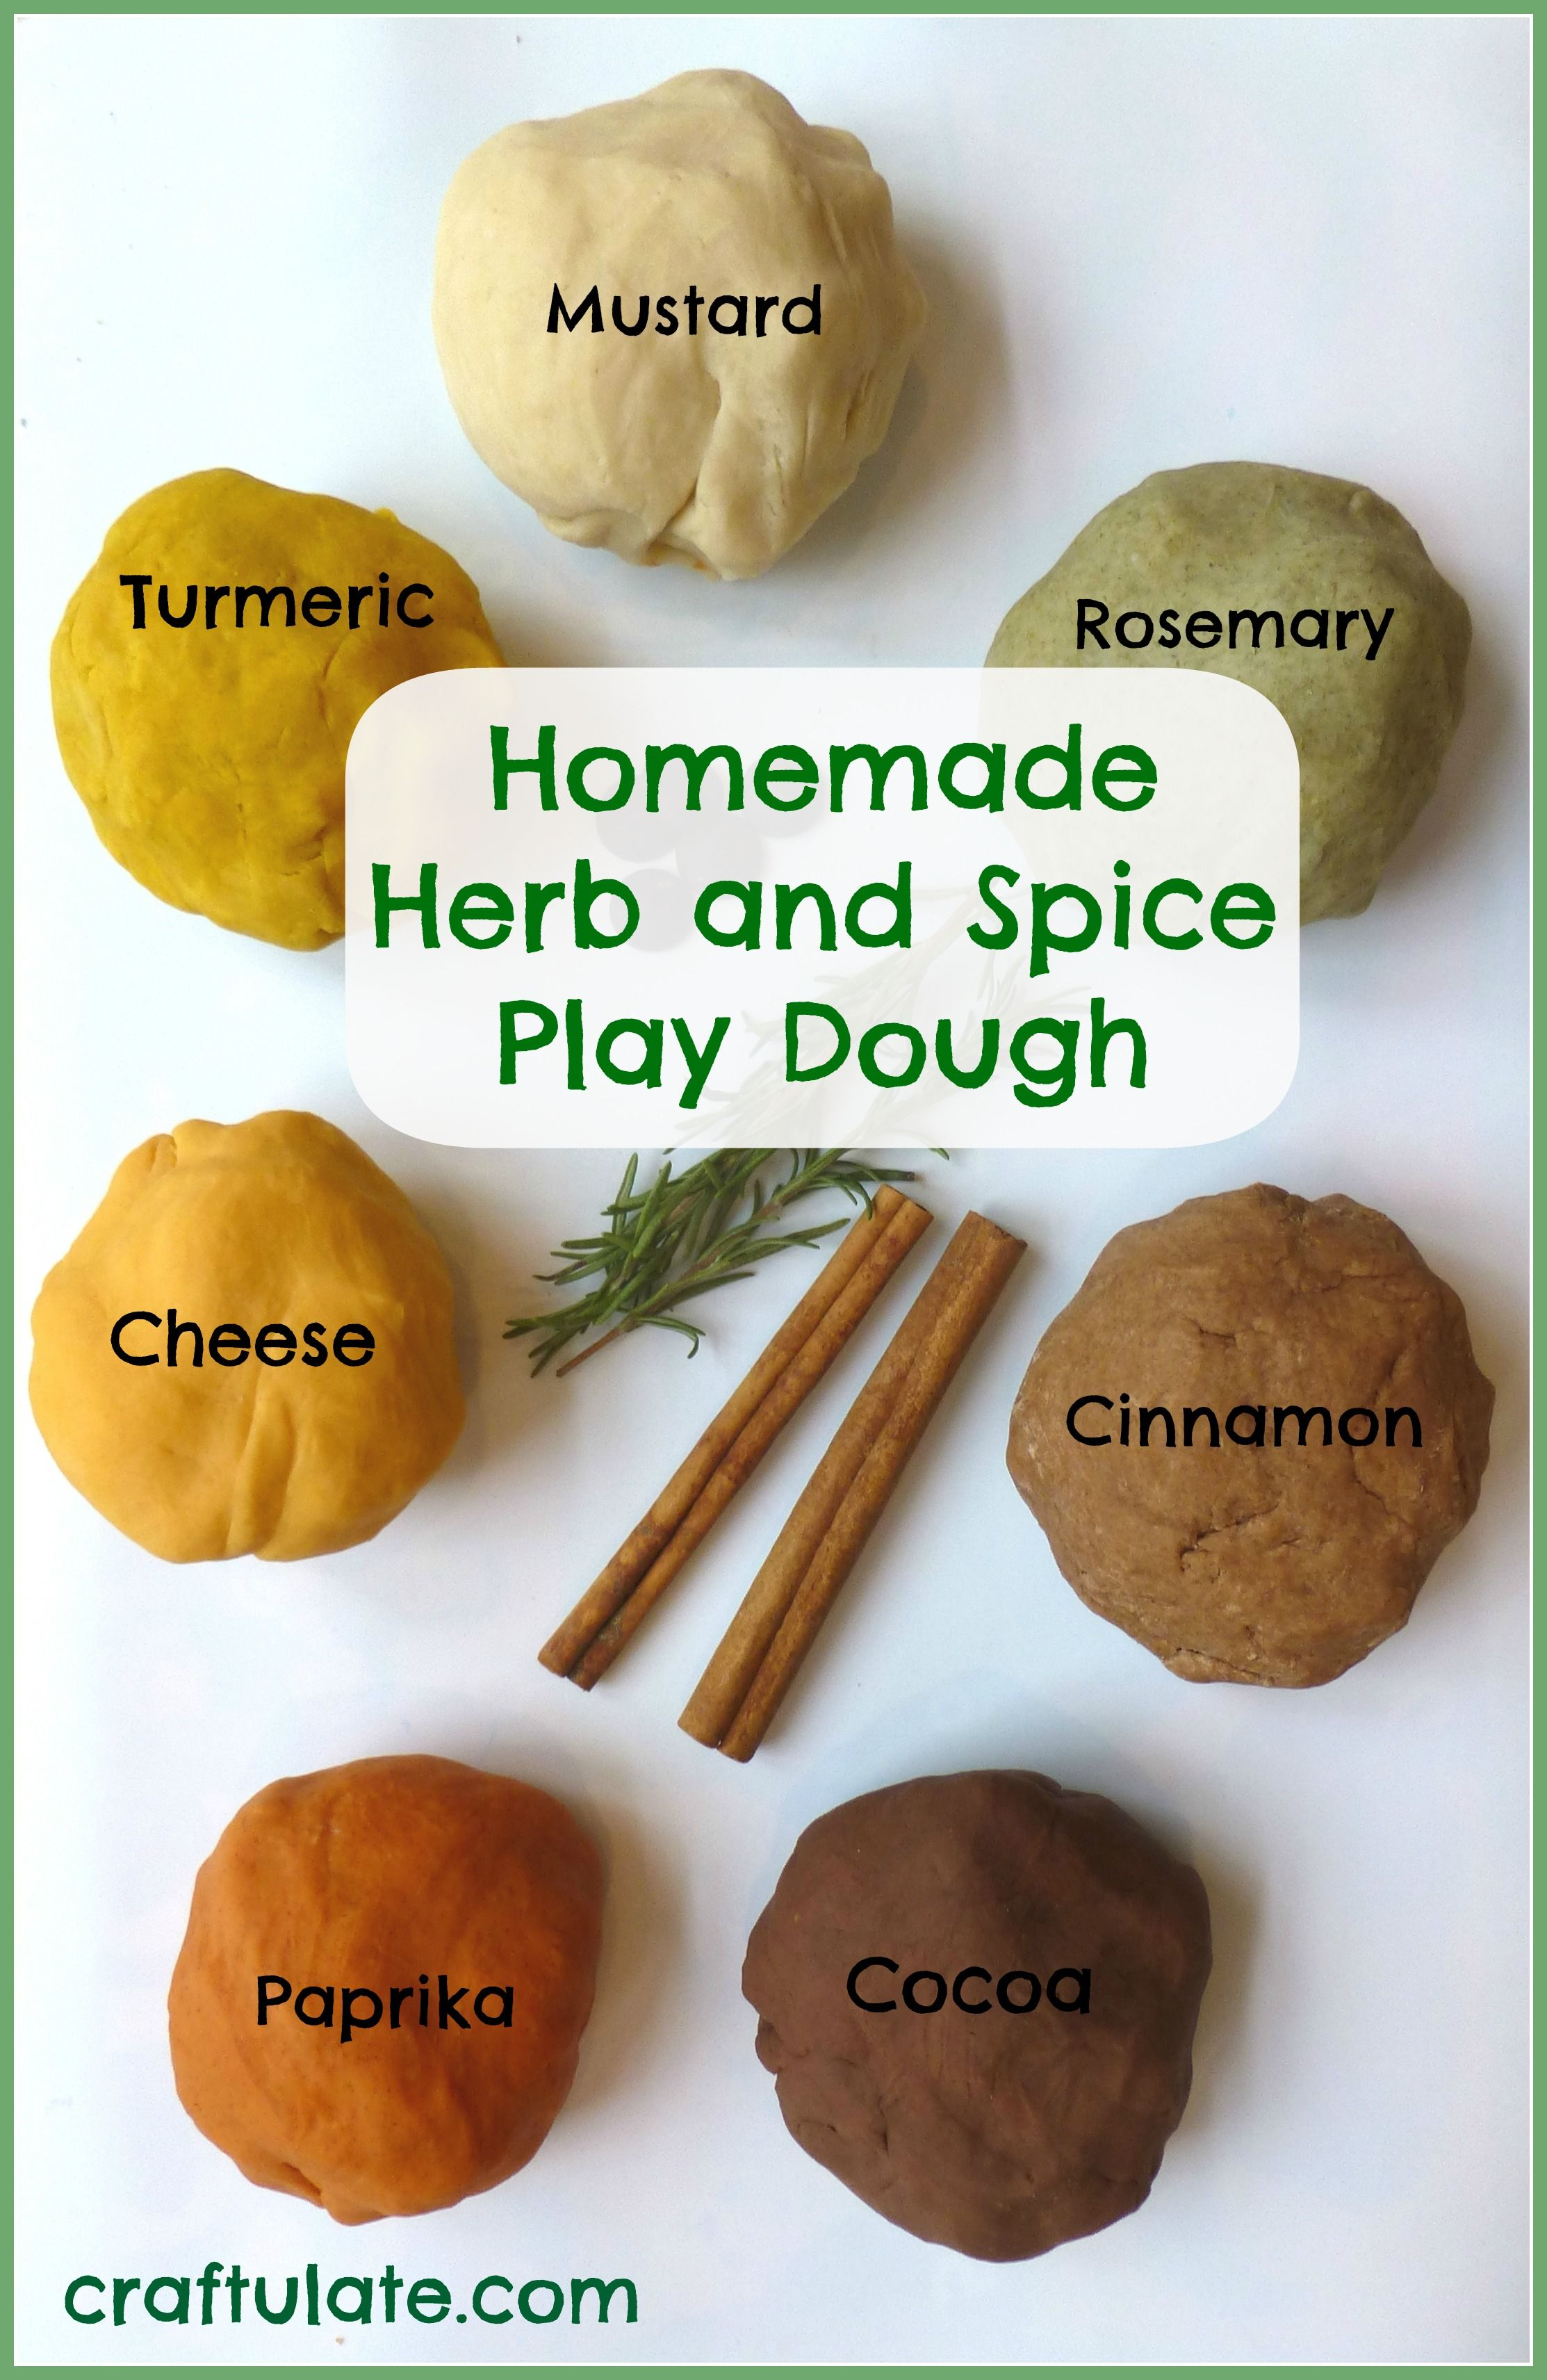 Homemade Herb and Spice Play Dough Recipe